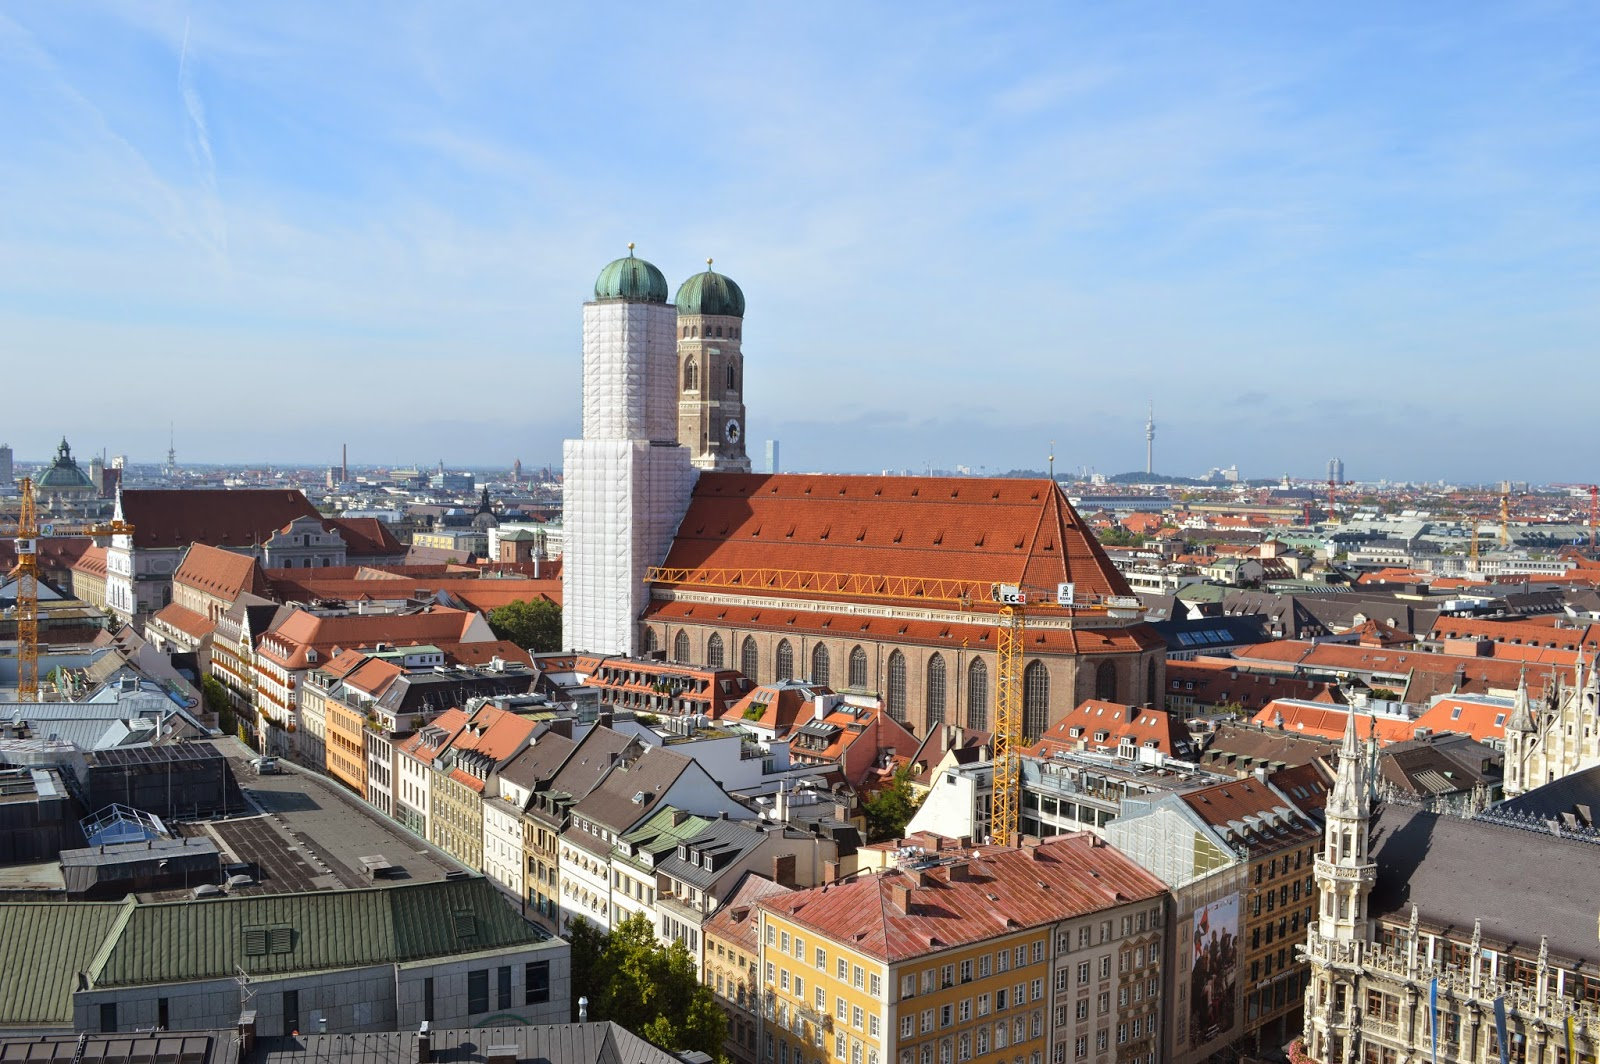 View of Frauenkirche from the top of Kirche St. Peter's Tower